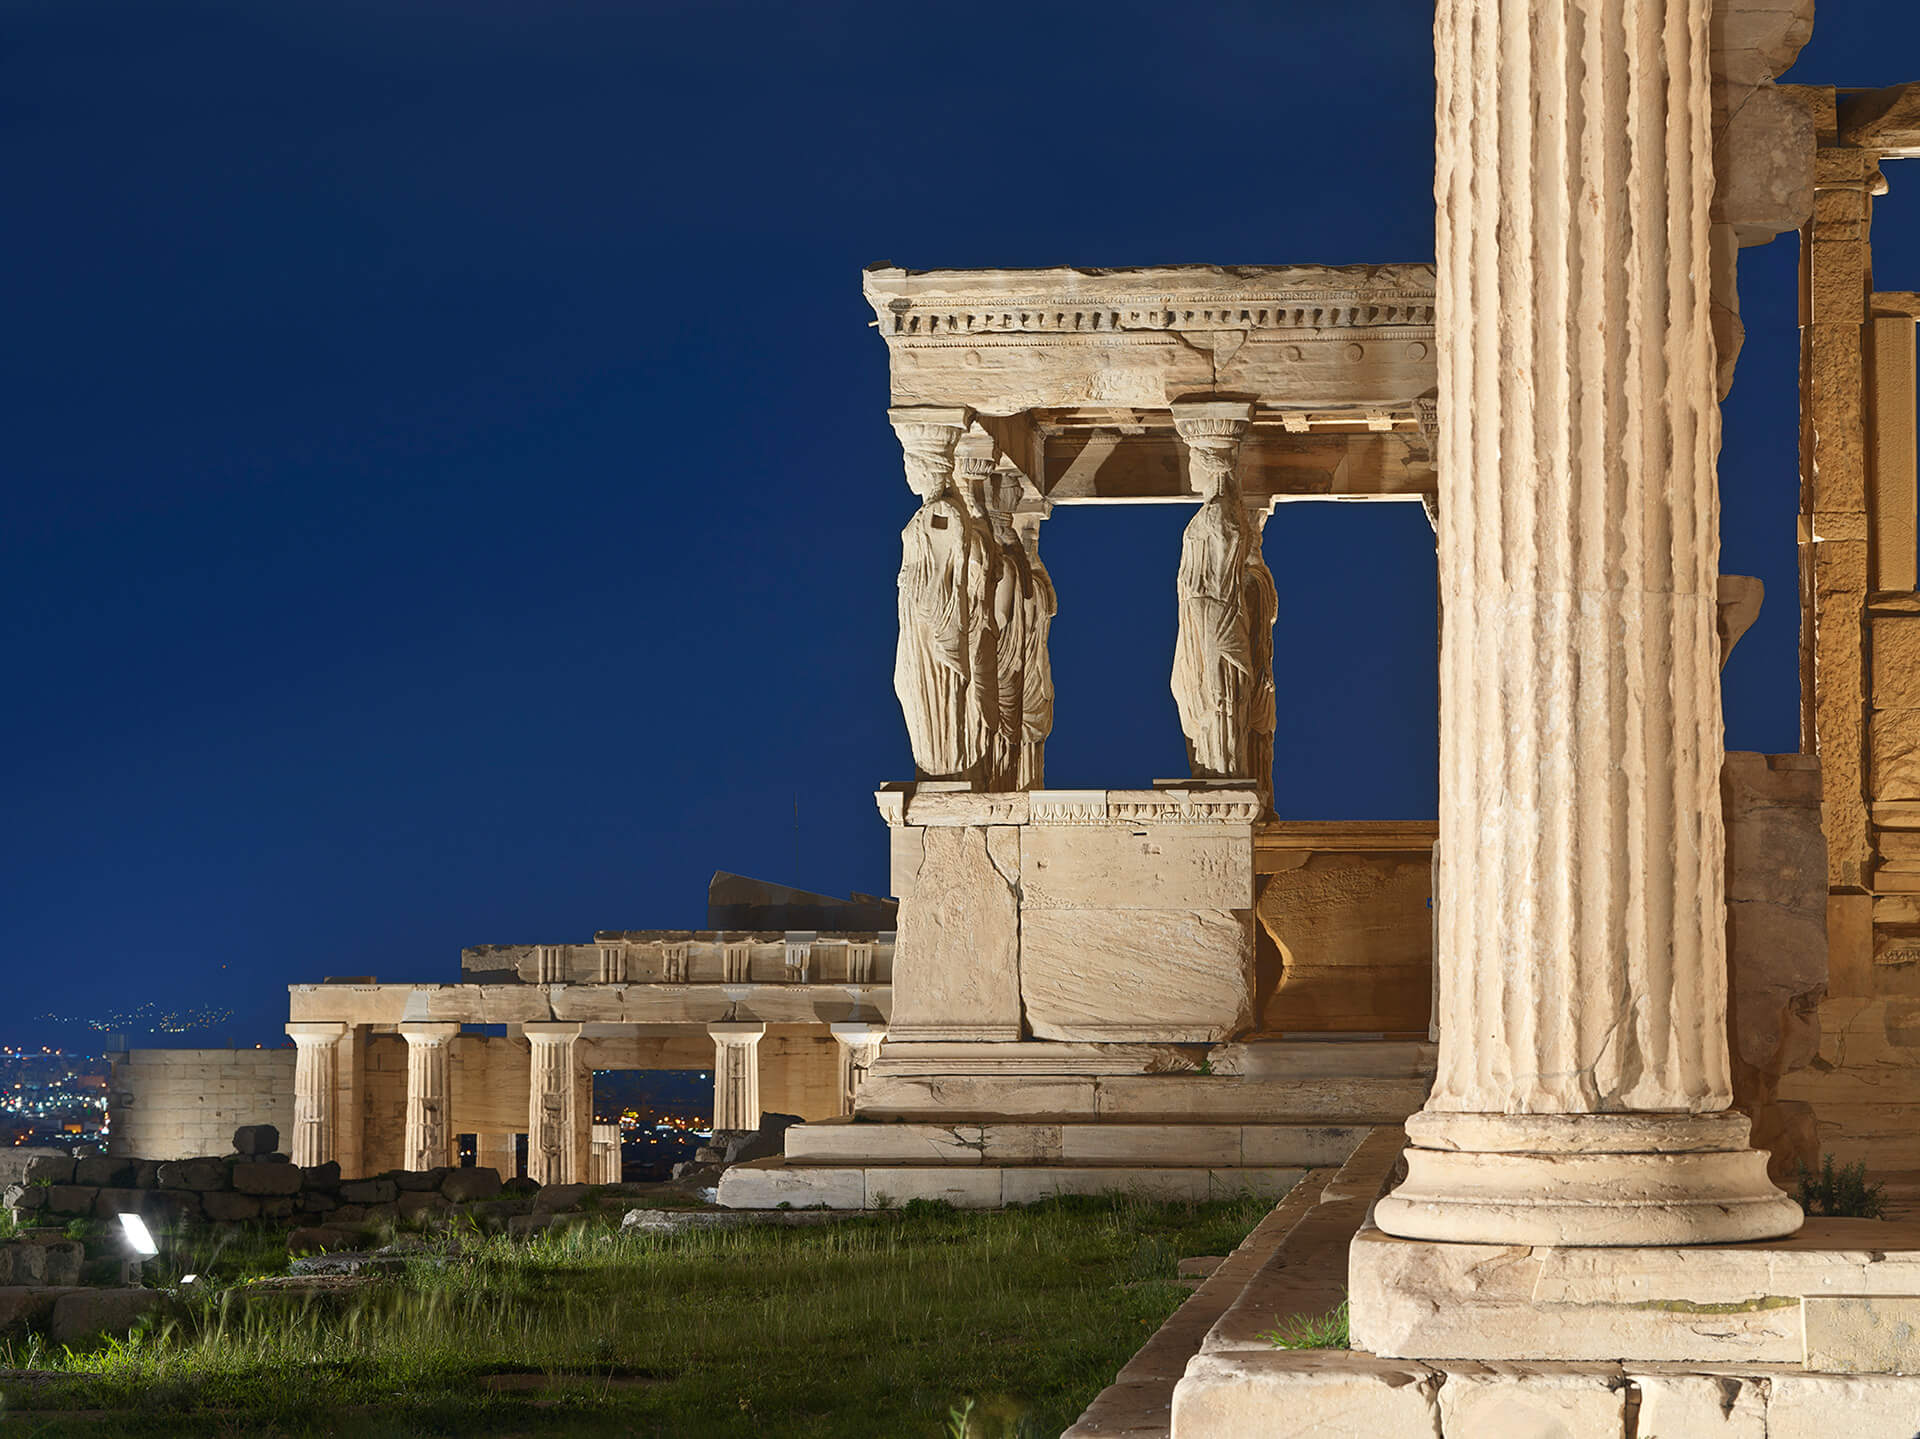 The Erechtheion, which features the Ionic order of architecture, is known for its carefully sculpted columns, or caryatids | Acropolis of Athens by Onassis Foundation designed by Eleftheria Deko | STIRworld